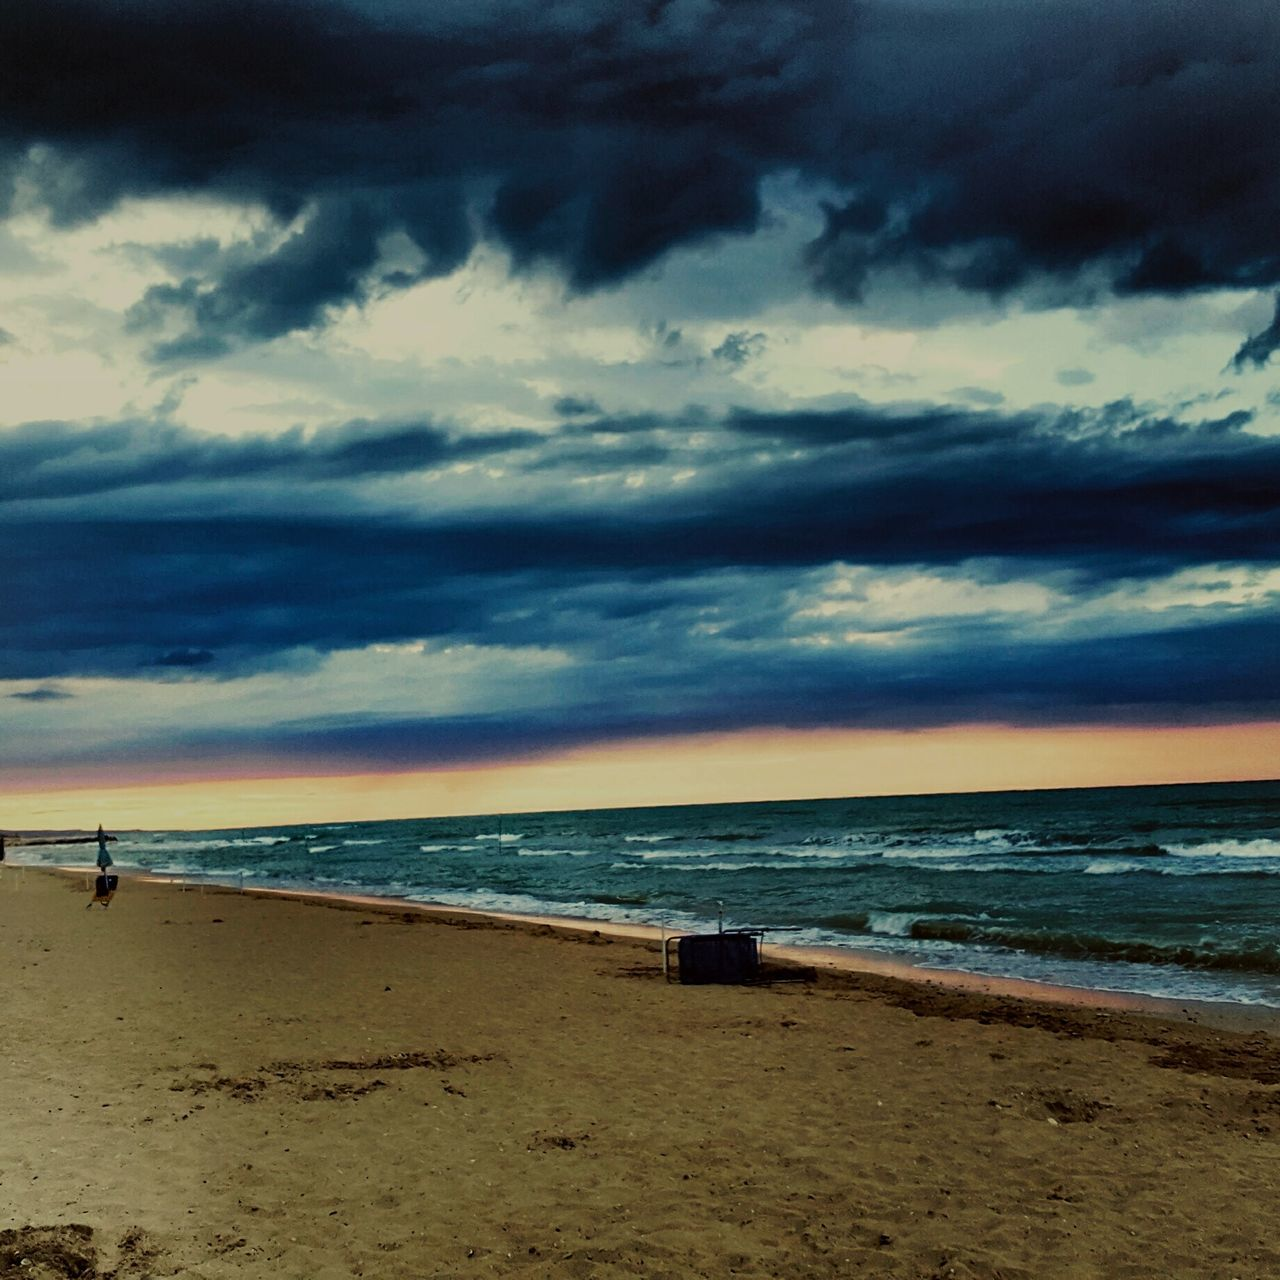 sea, beach, horizon over water, sand, water, cloud - sky, sky, shore, scenics, nature, beauty in nature, tranquil scene, tranquility, outdoors, wave, sunset, vacations, day, no people